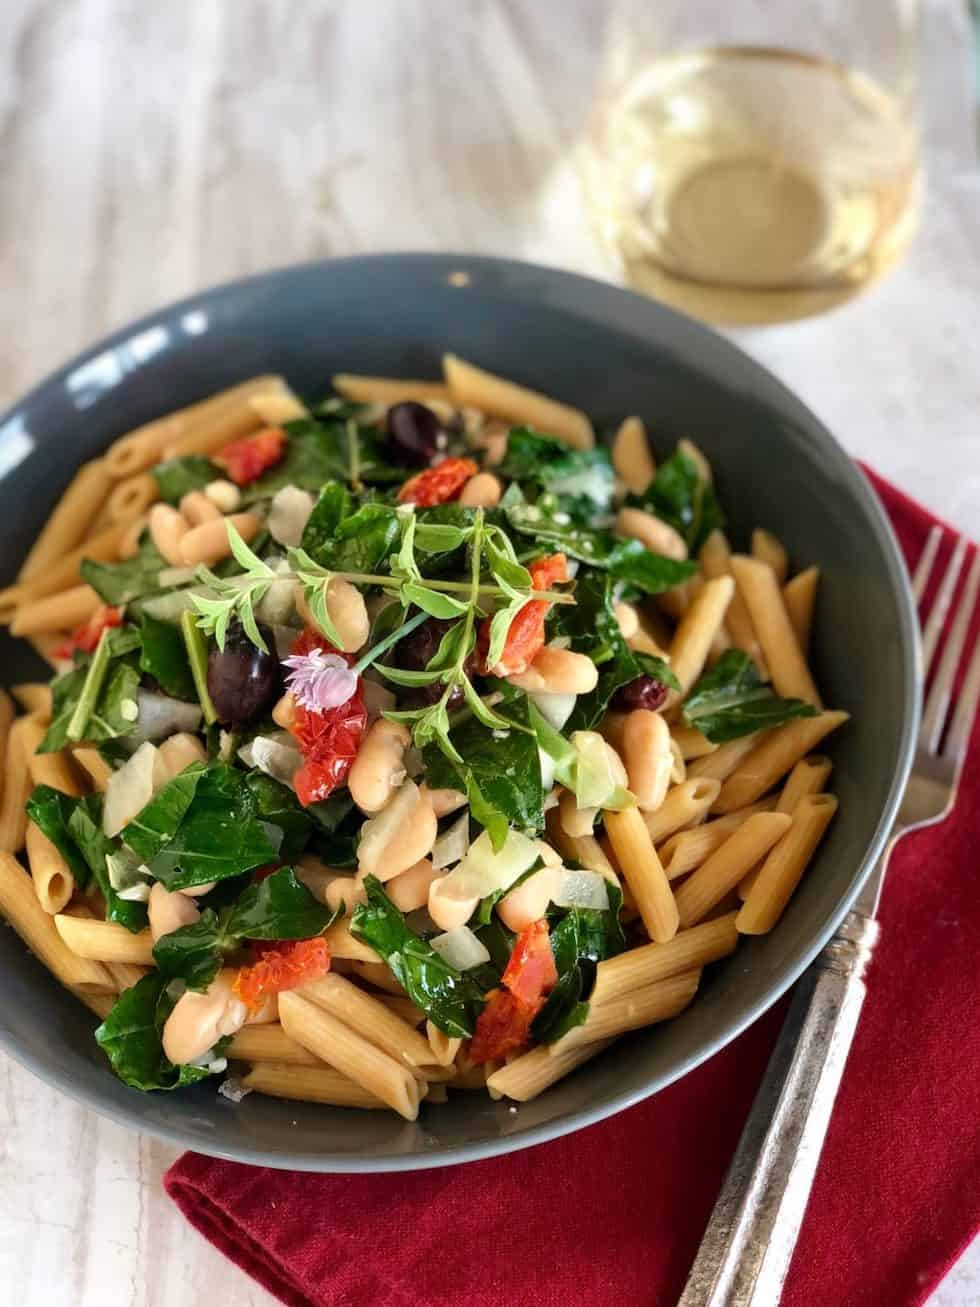 Vegetarian dinner recipes include this penne with white beans in a grey bowl with a red napkin and glass of white wine.